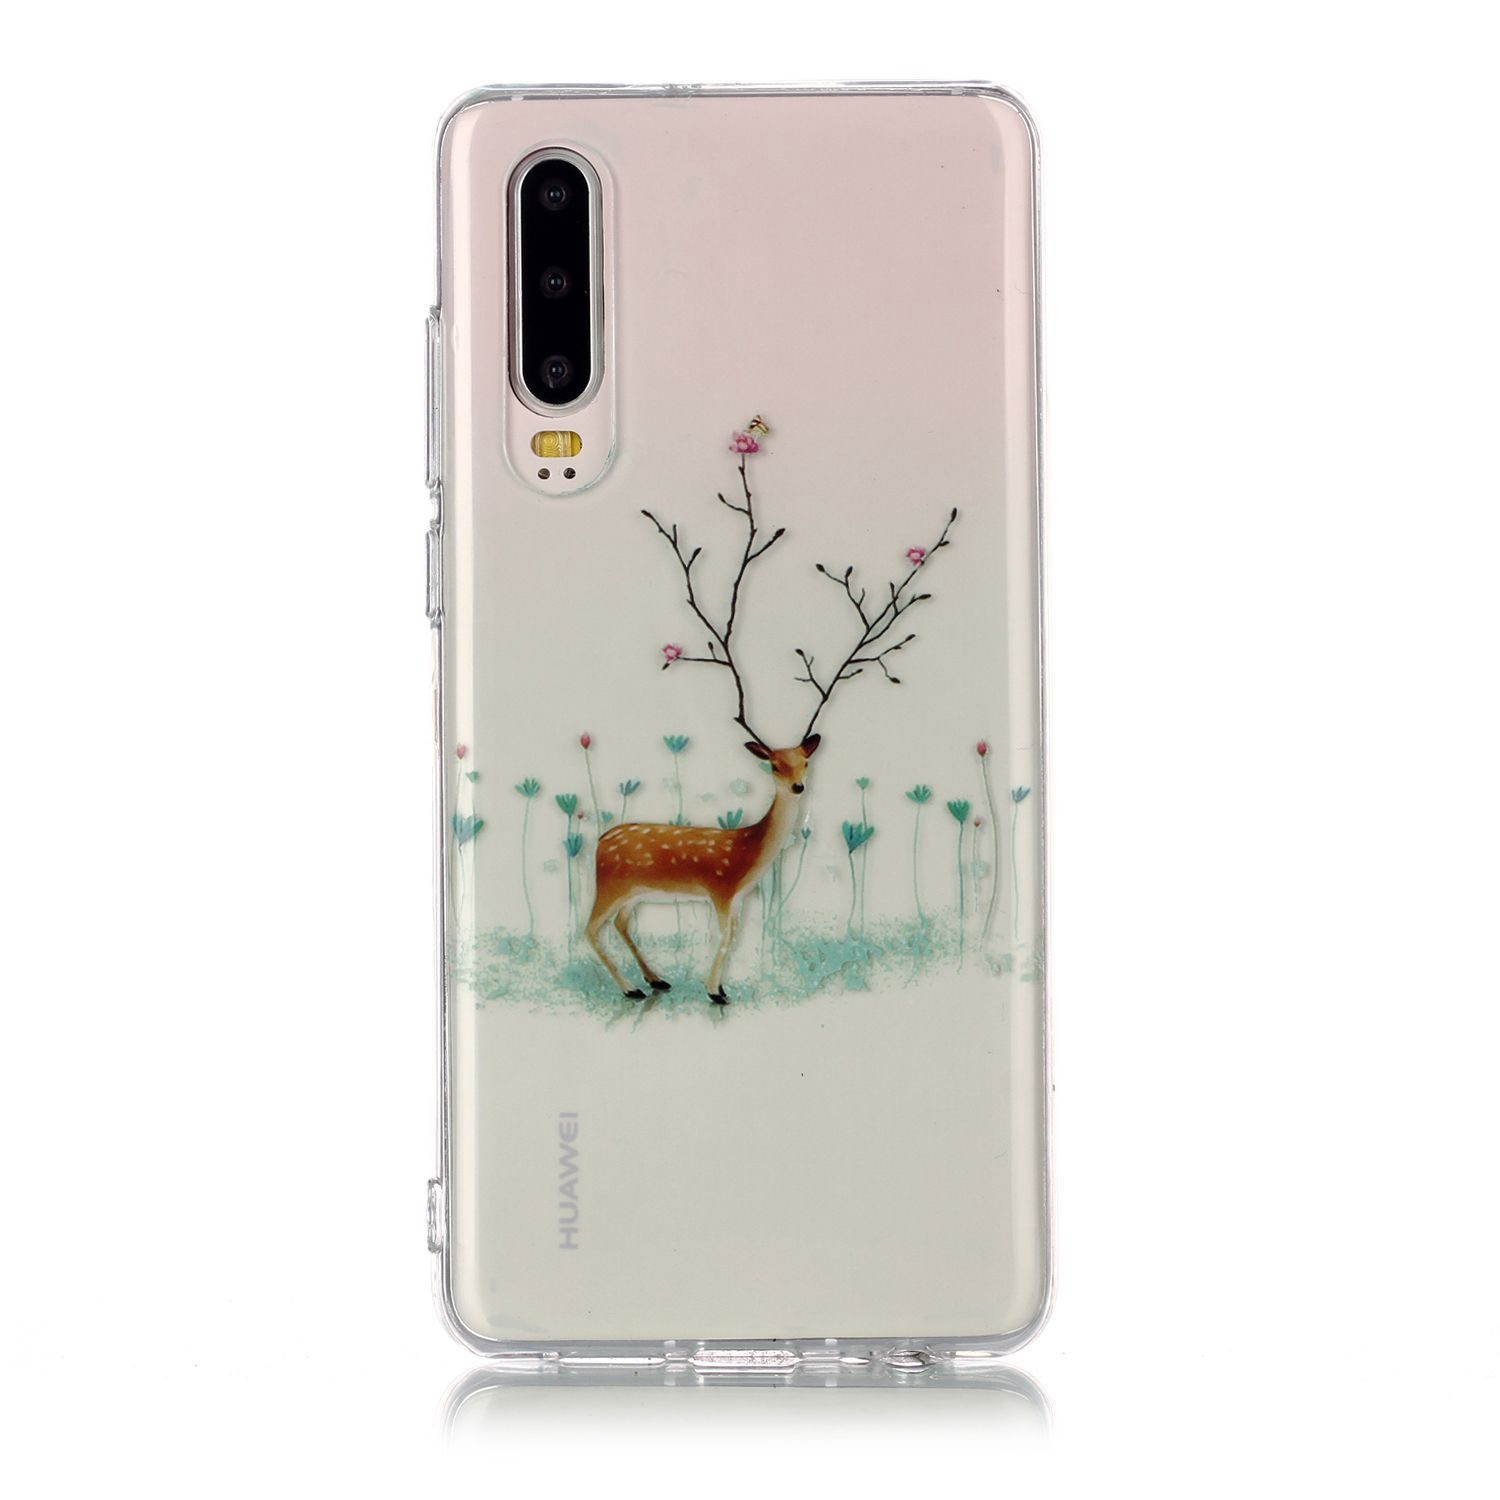 For HUAWEI P30 Christmas Phone Case Anti-fall Protective Shell Super Soft TPU Smartphone Cover Birthday Gift